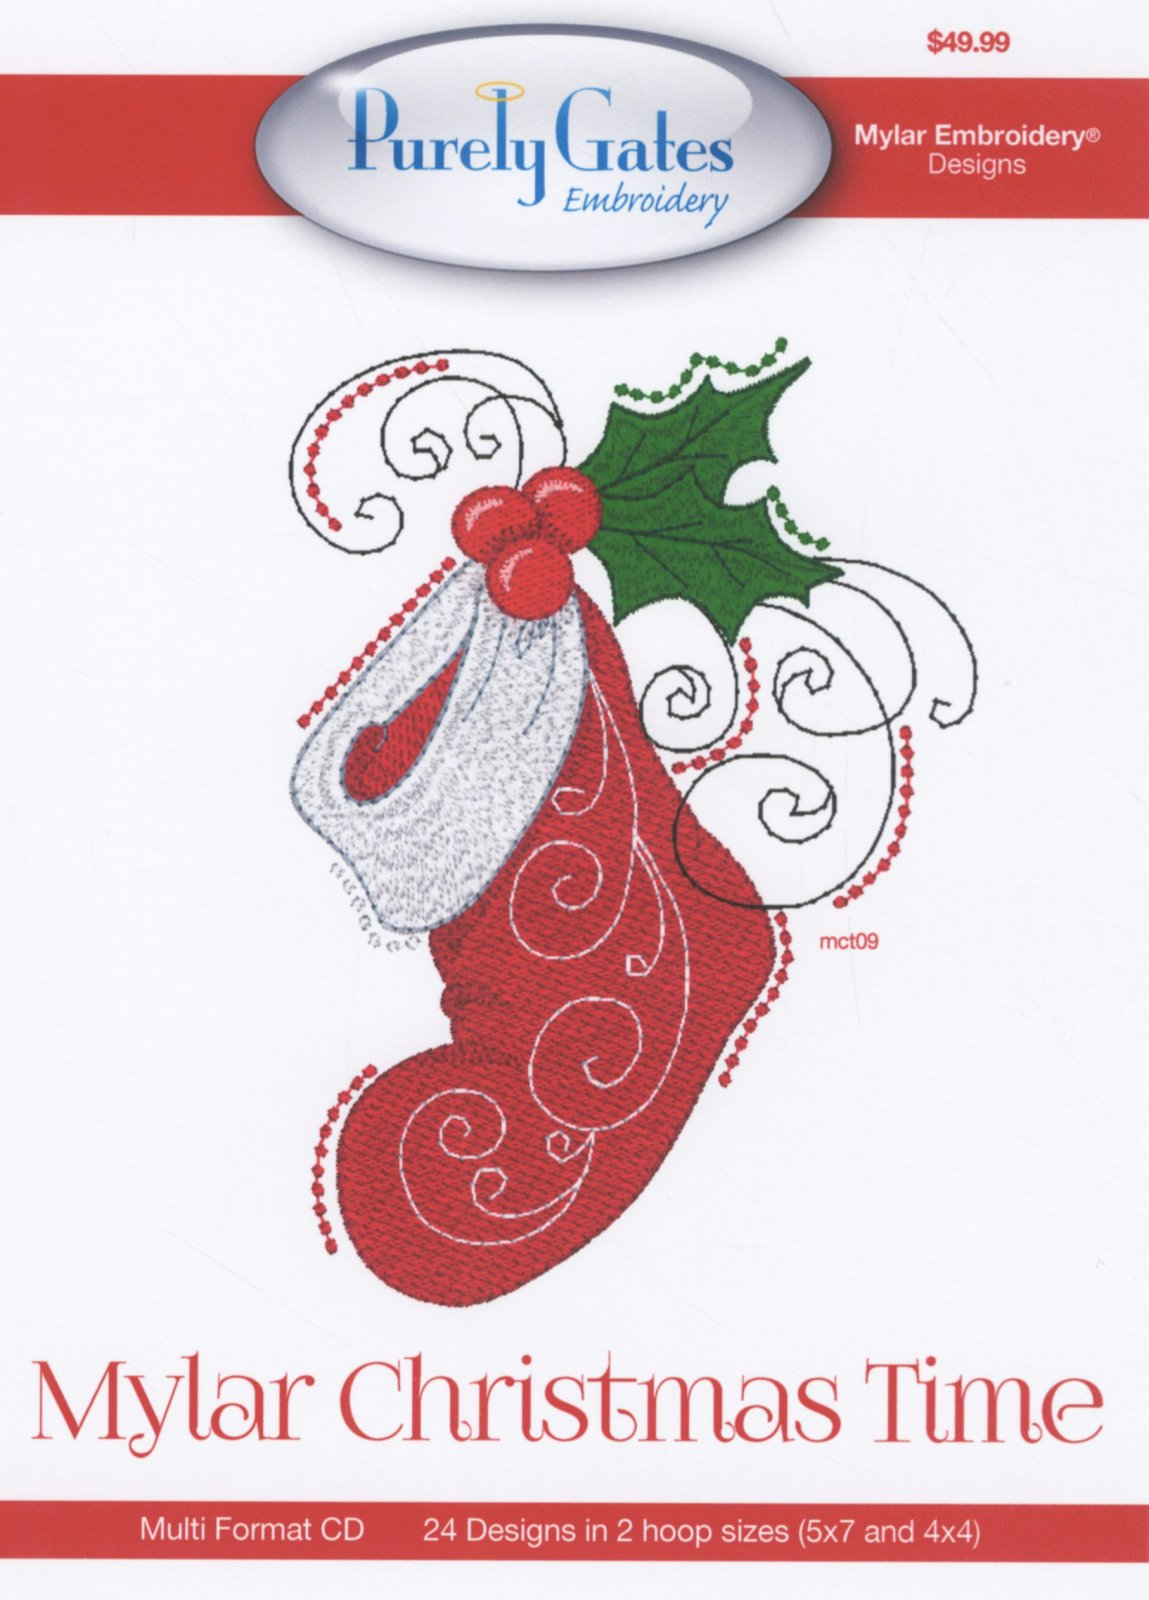 CD Embroidery Design Mylar Christmas Time Machine Embroidery